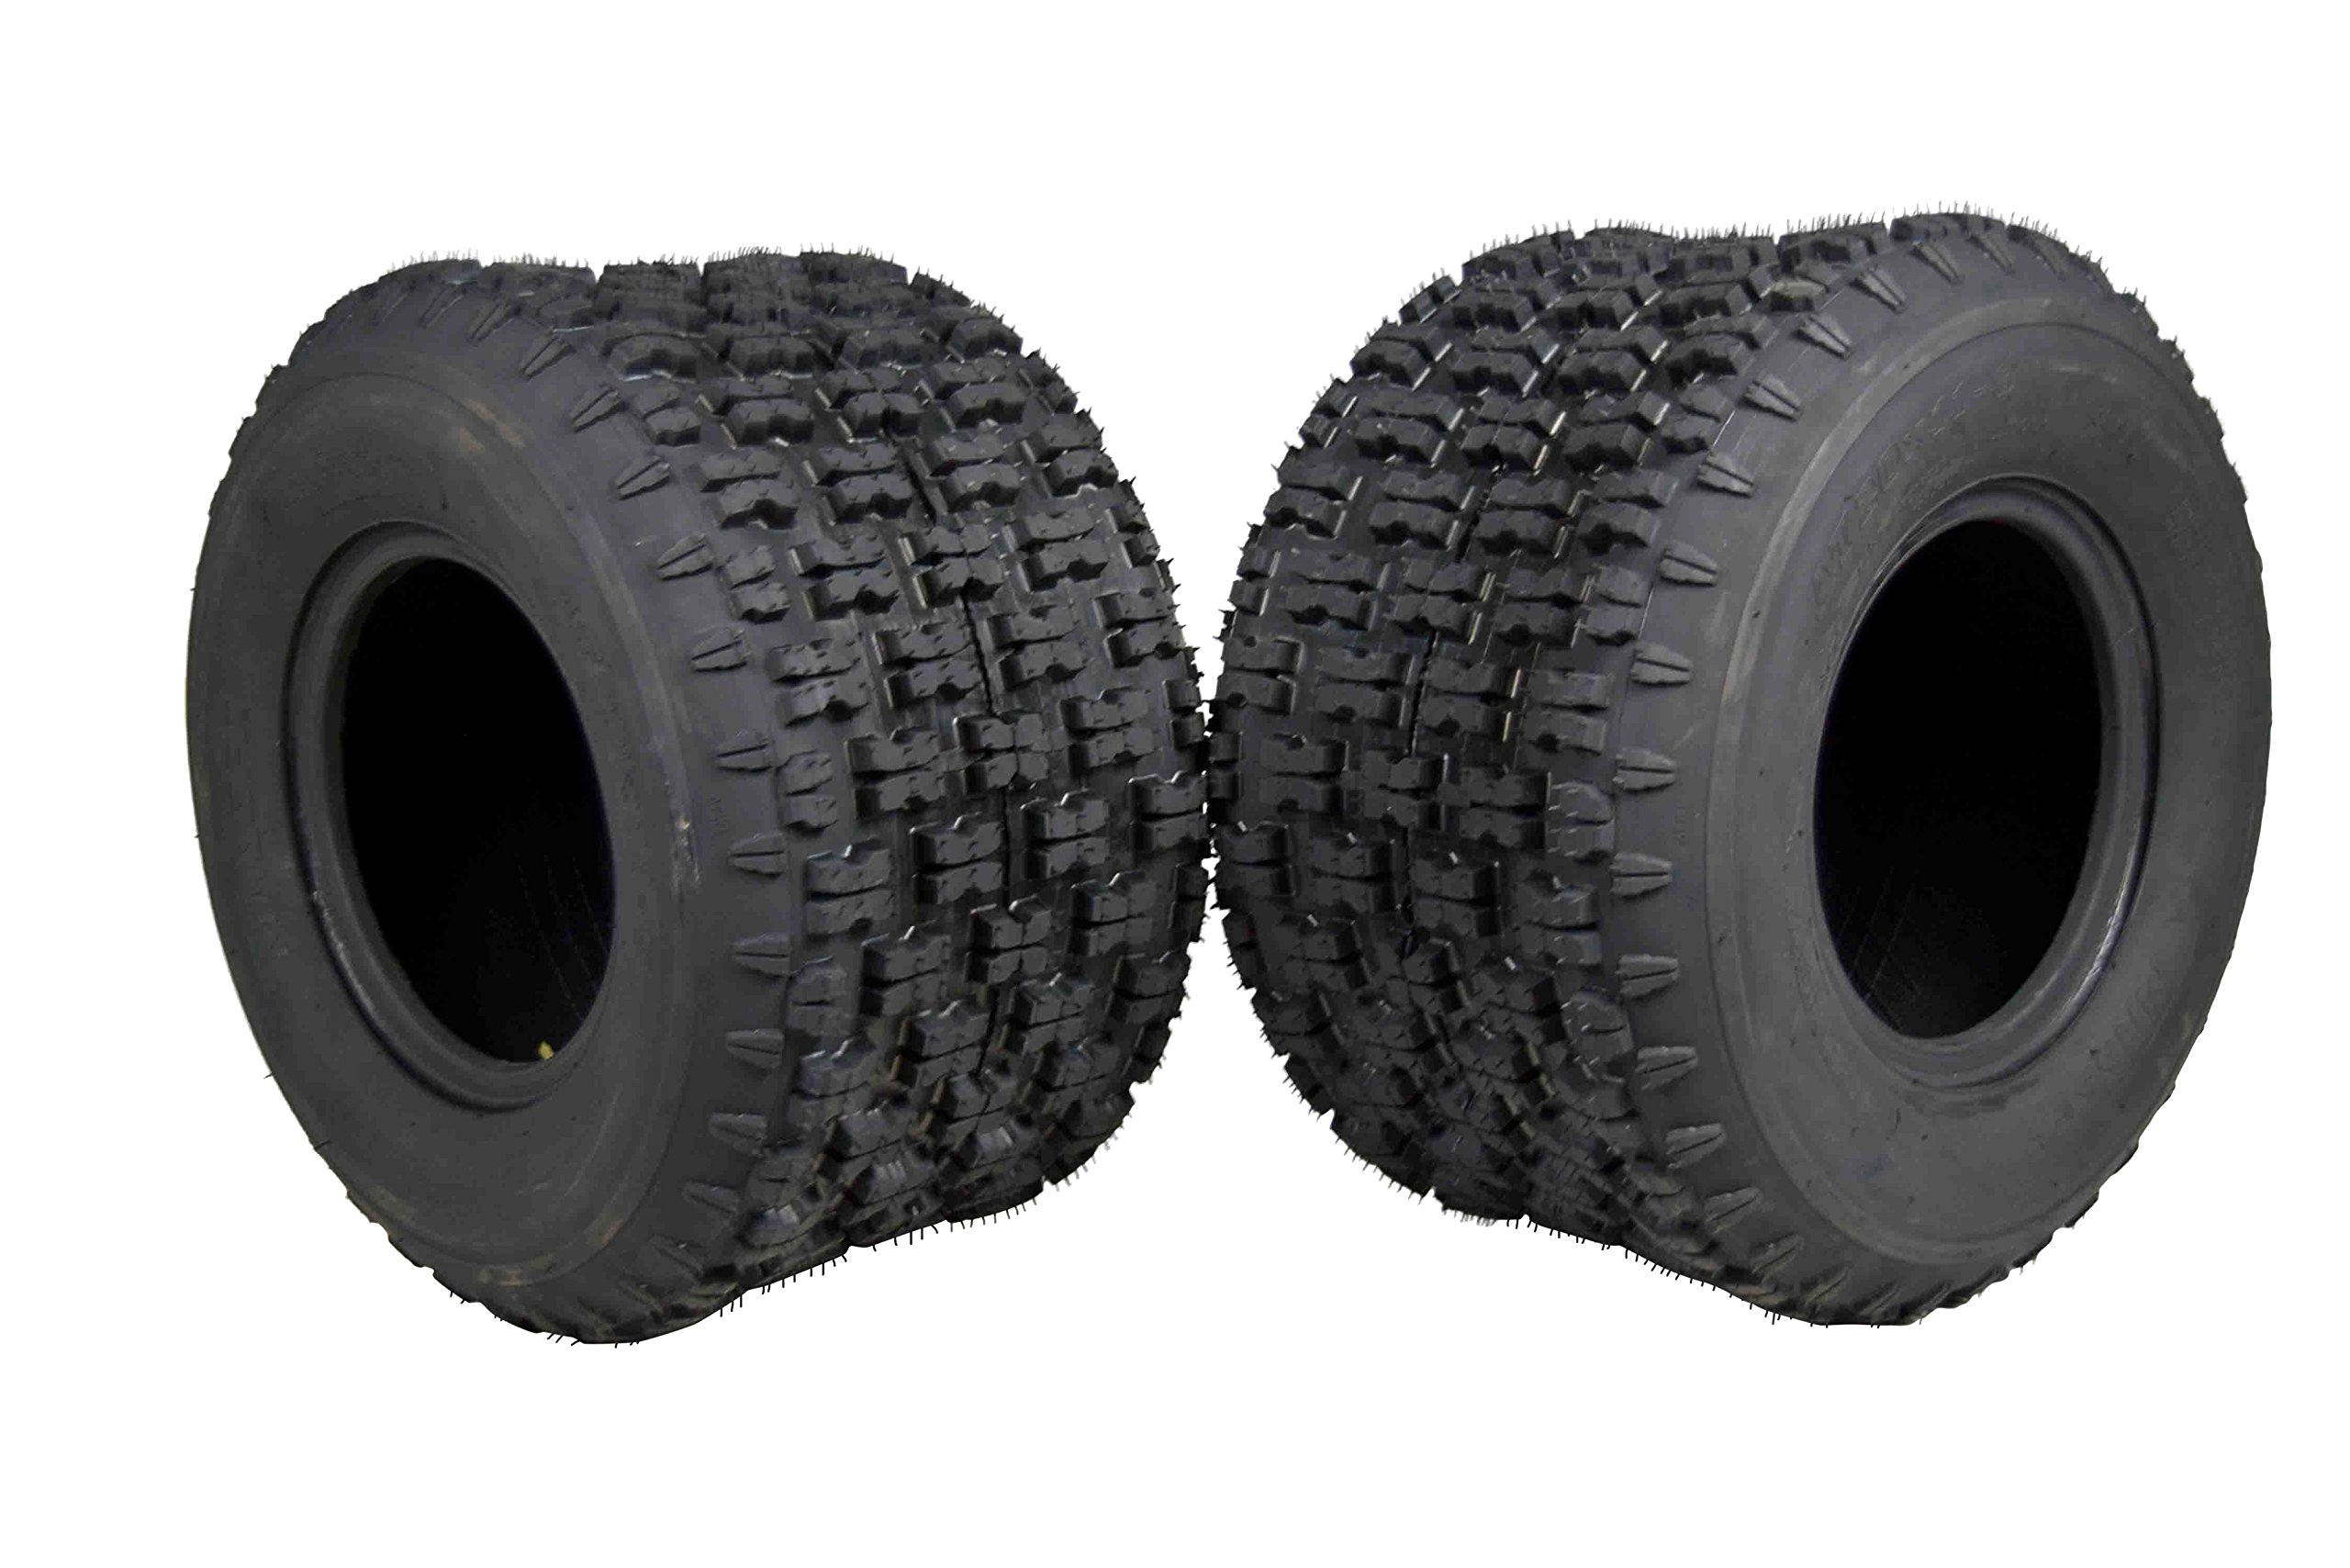 MASSFX 20'' Rear ATV Tire Set 20x11-9 Tire 4 PLY 20x11x9 MO20119 2 Pack by MASSFX (Image #1)